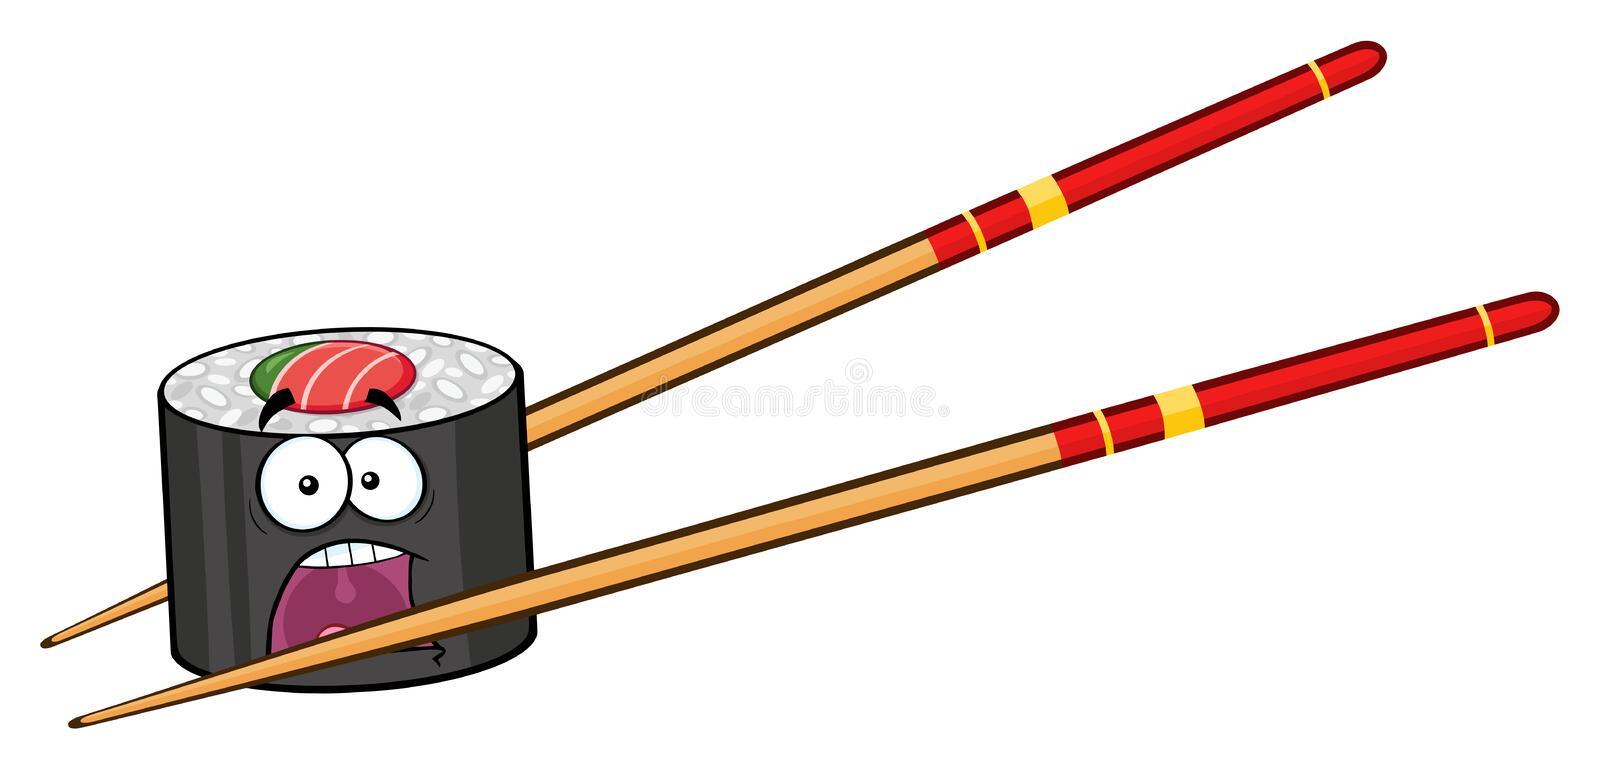 Panic Sushi Roll Cartoon Mascot Character With Chopsticks royalty free illustration